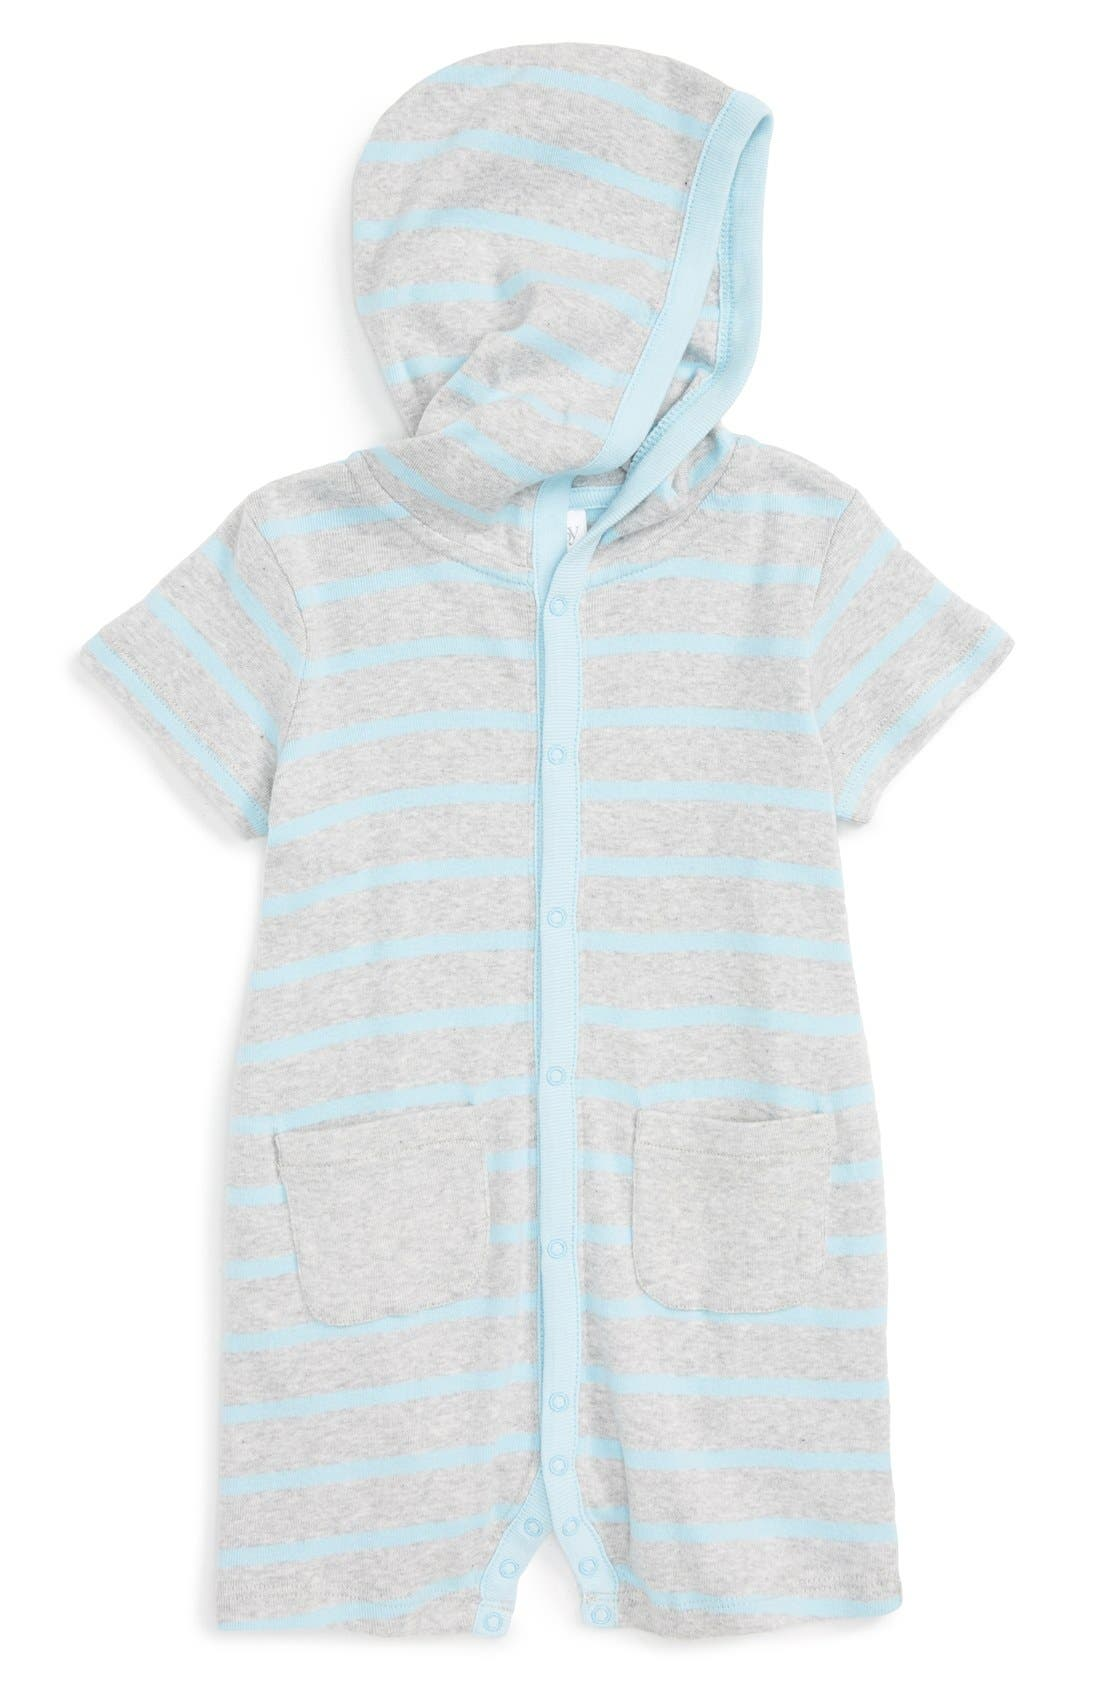 Stripe Hooded Romper,                             Main thumbnail 1, color,                             Blue Sky Breton